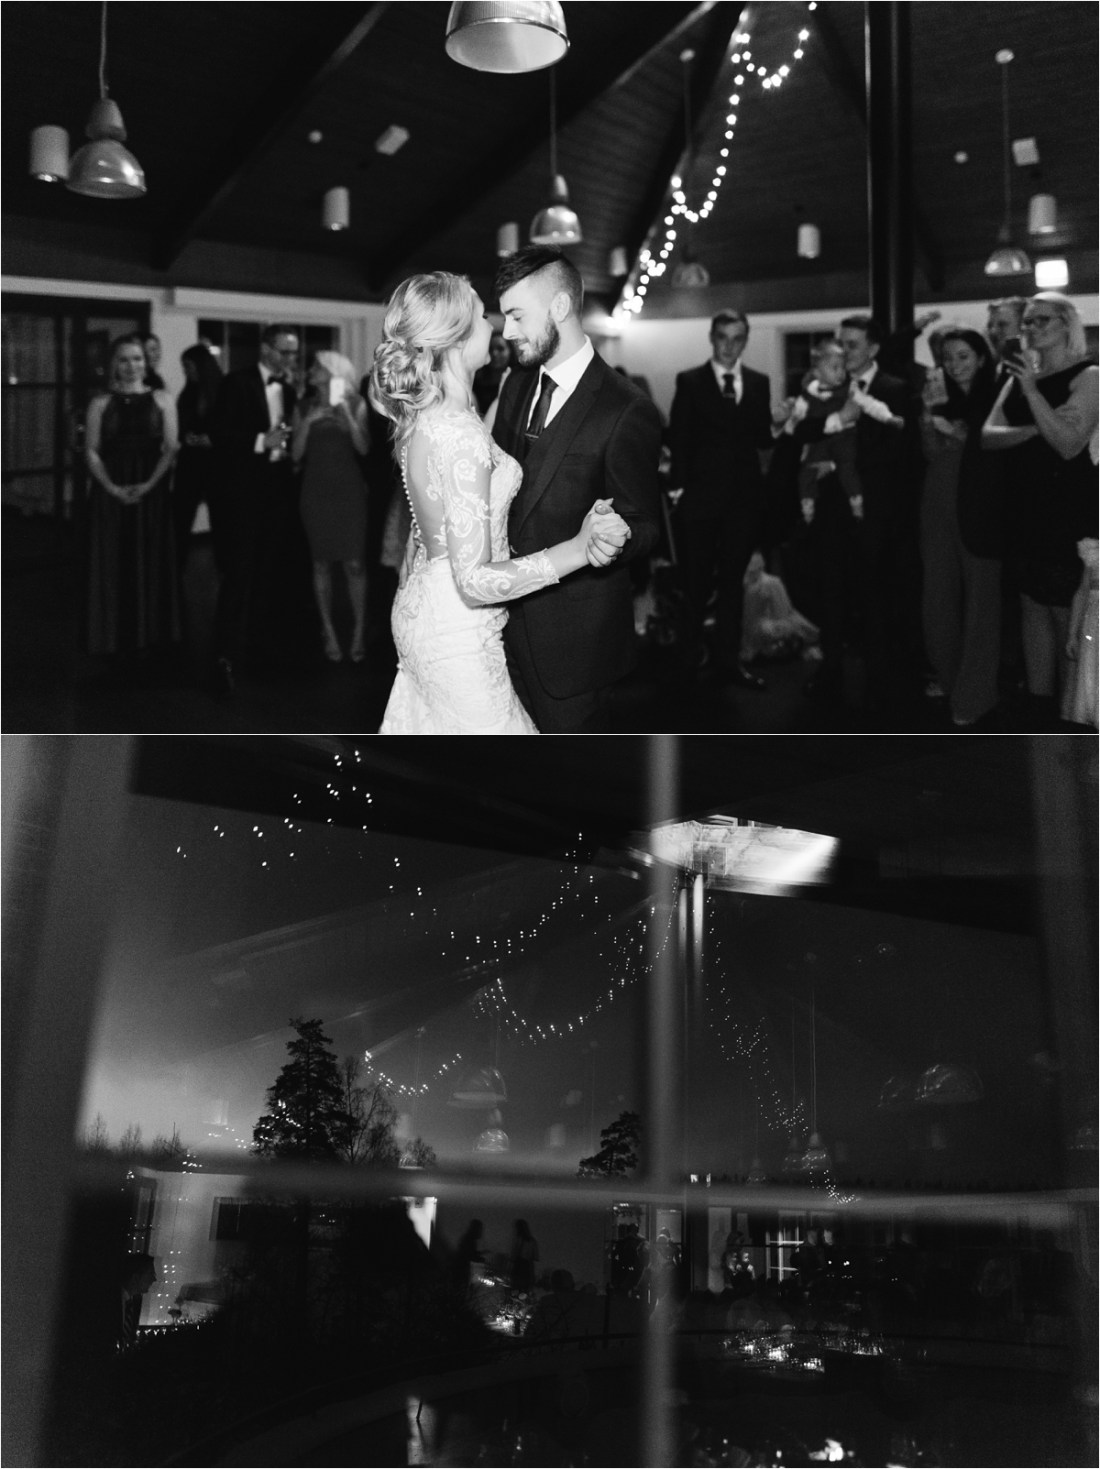 The first dance at their Finland destination wedding by Lucie Watson Photography